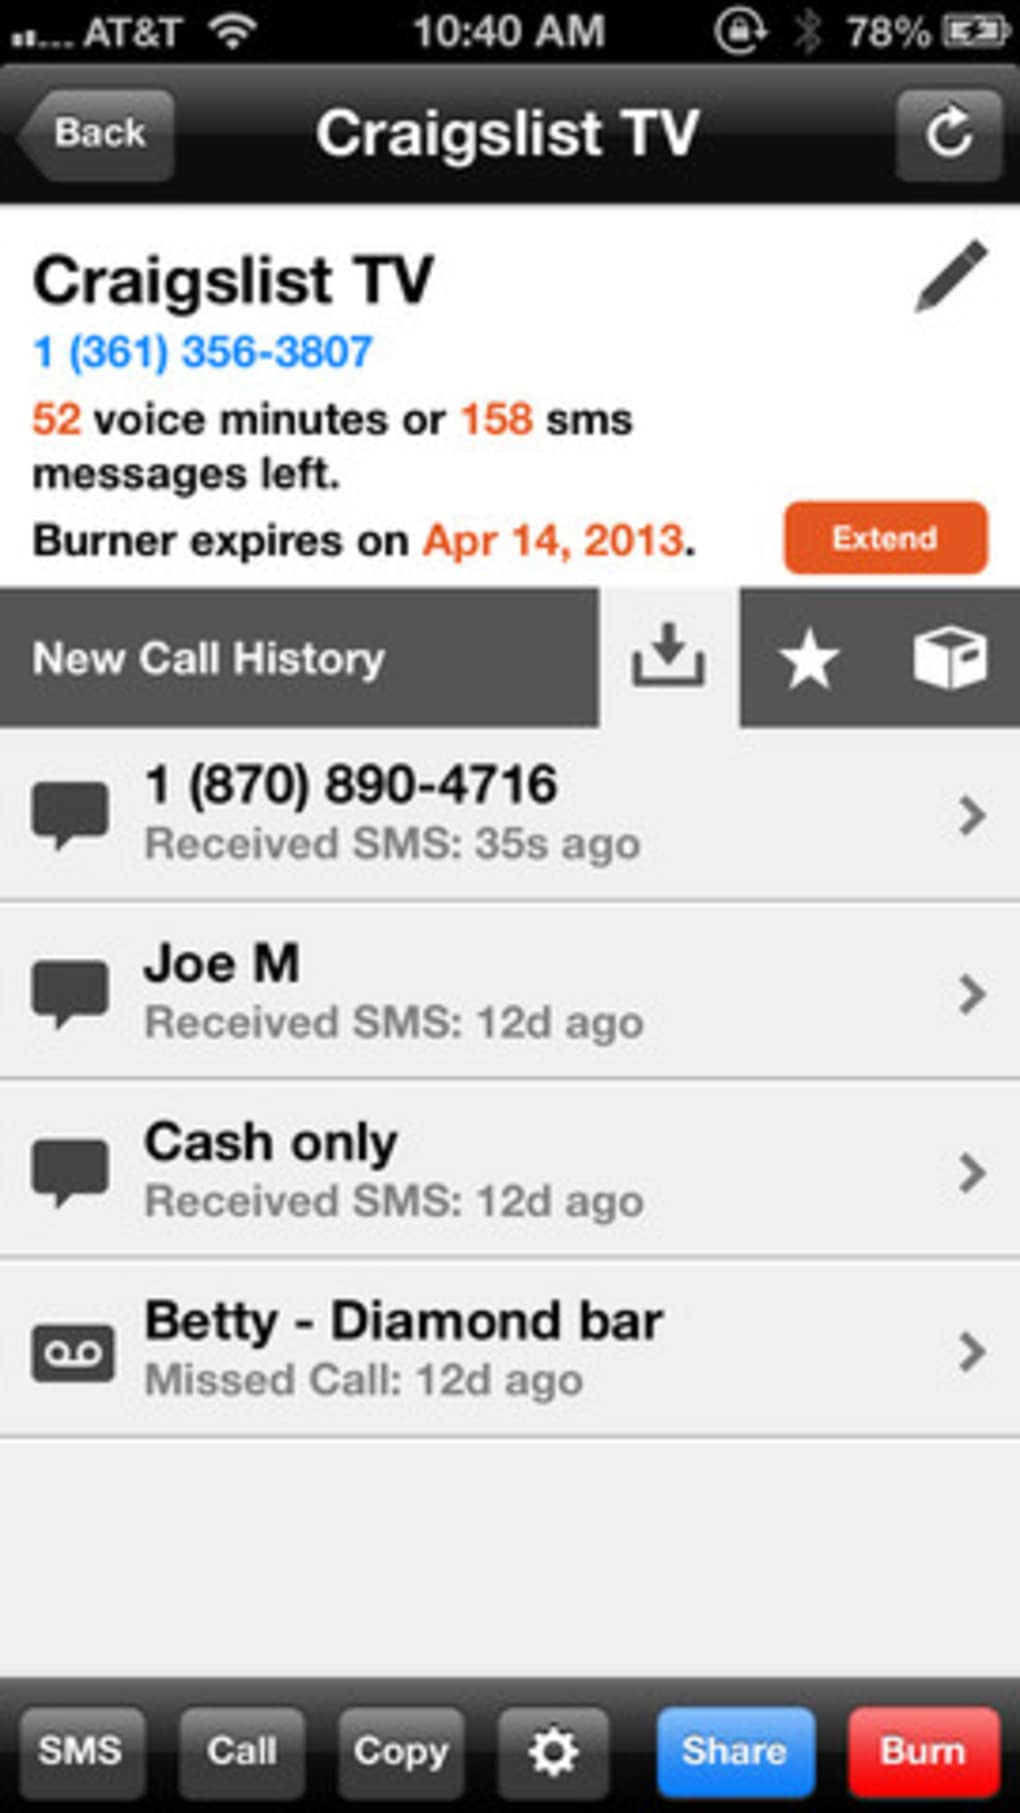 Burner - Disposable Phone Numbers for iPhone - Download